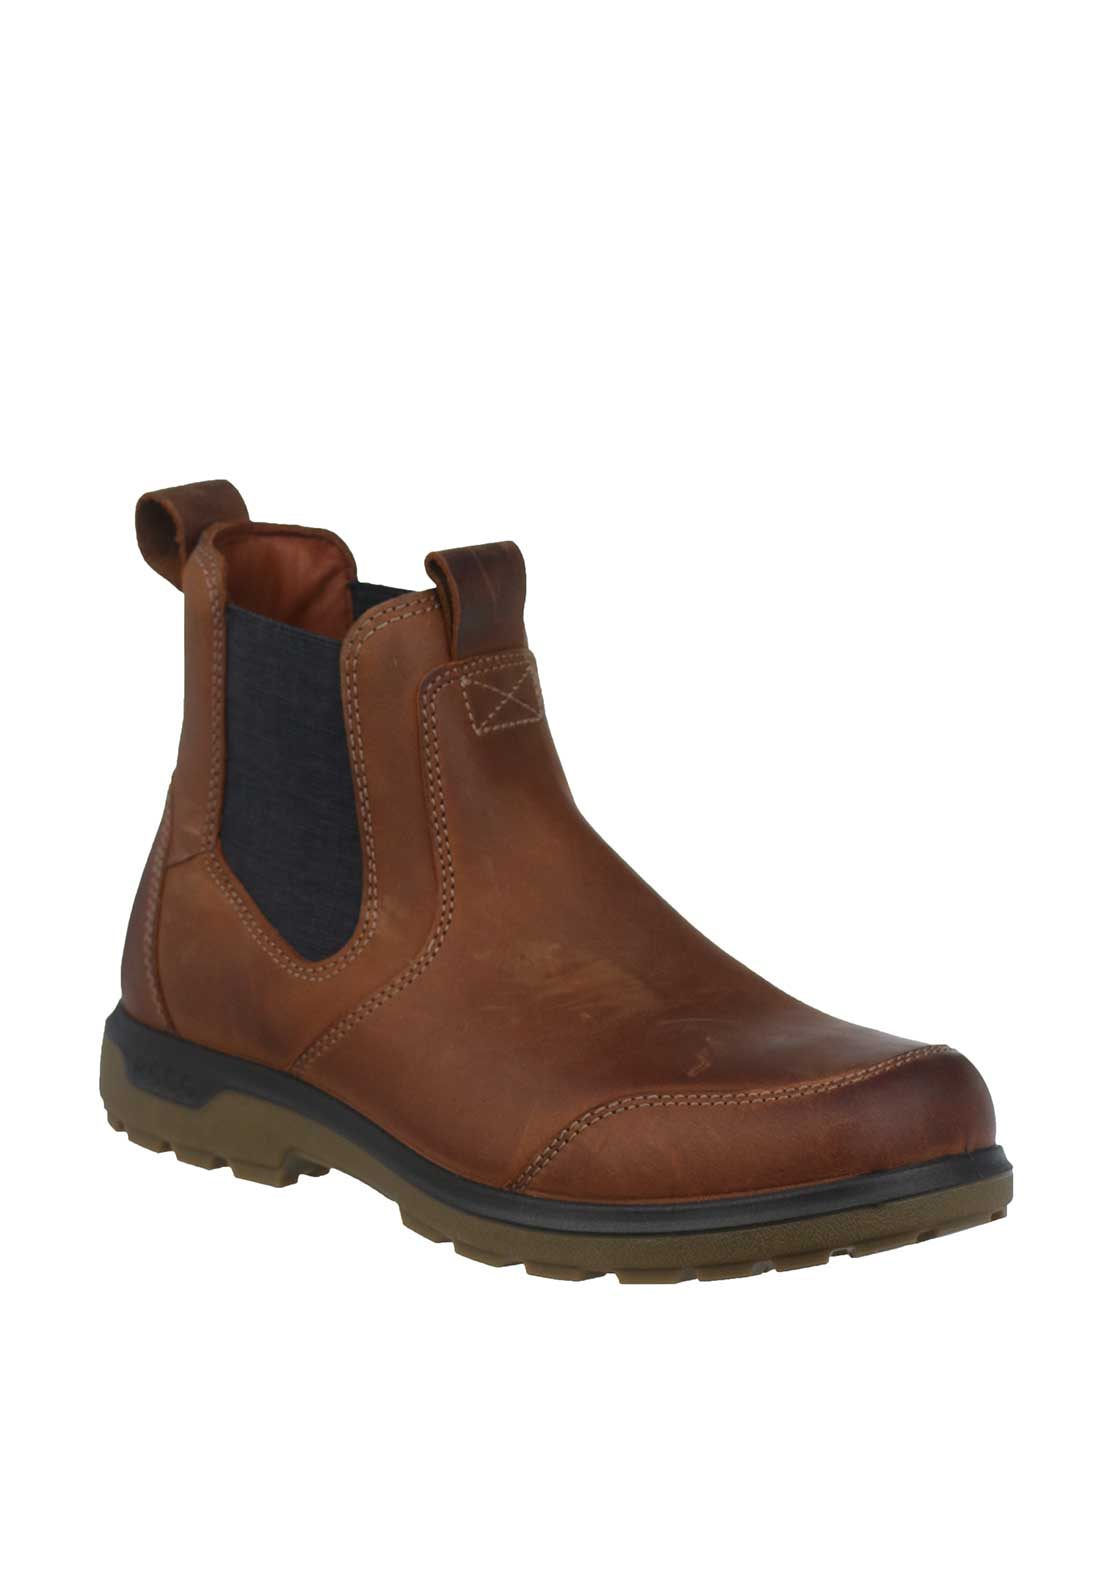 Ecco Mens Leather Chelsea Boots, Tan